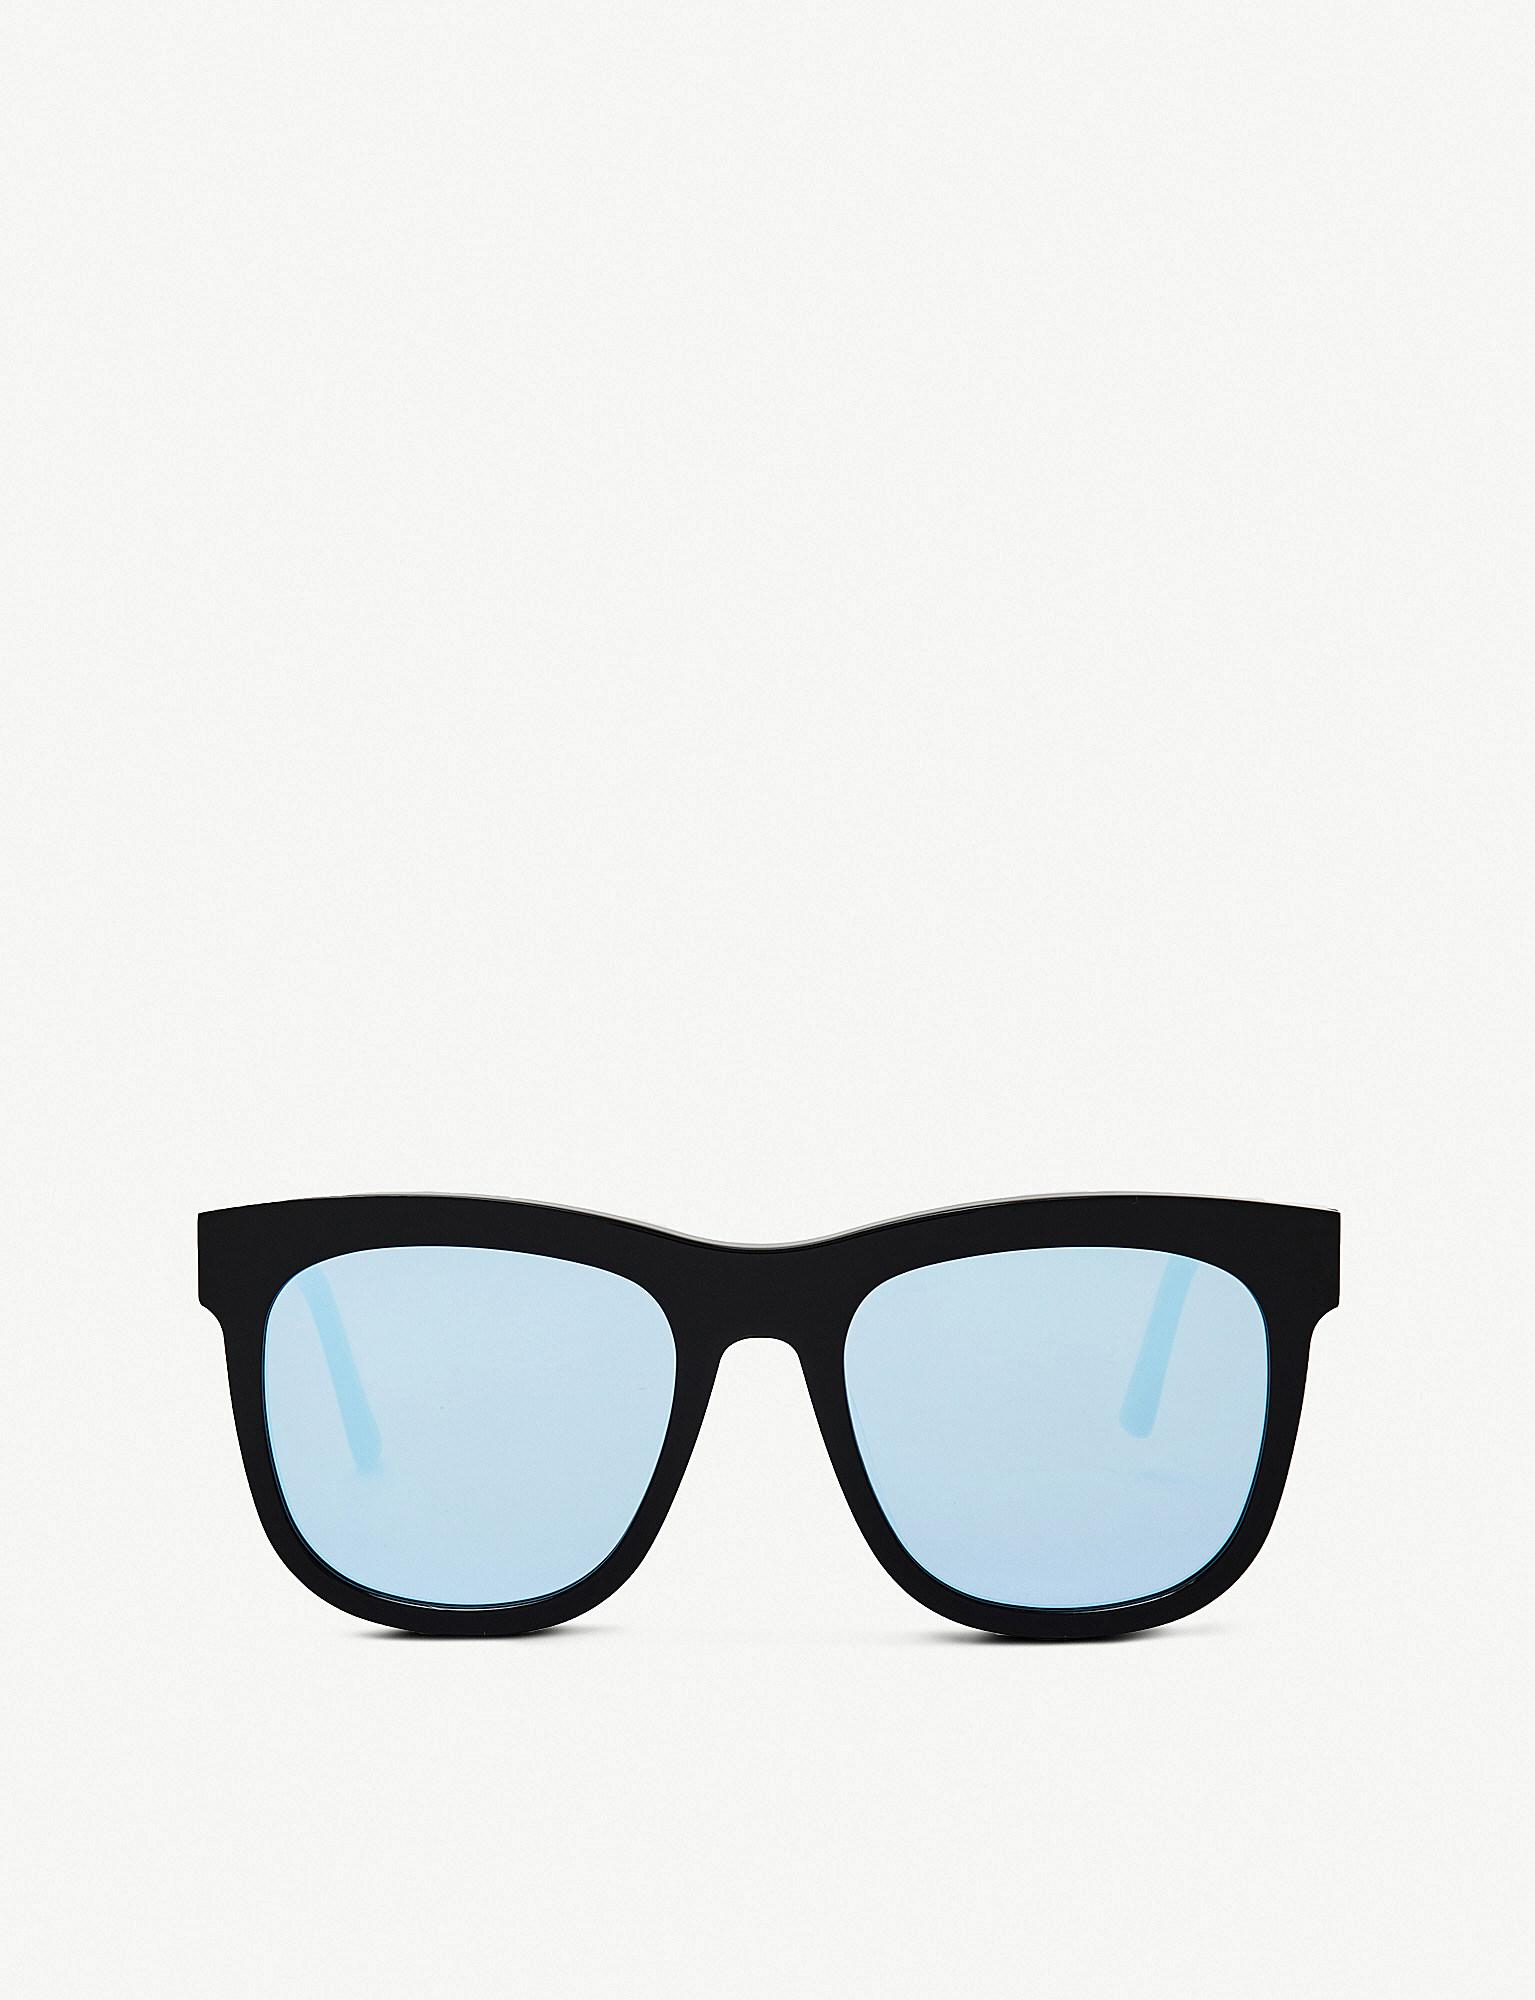 624cba02f51f Lyst - Gentle Monster Ladies Black And Blue Pulp Fiction Acetate ...